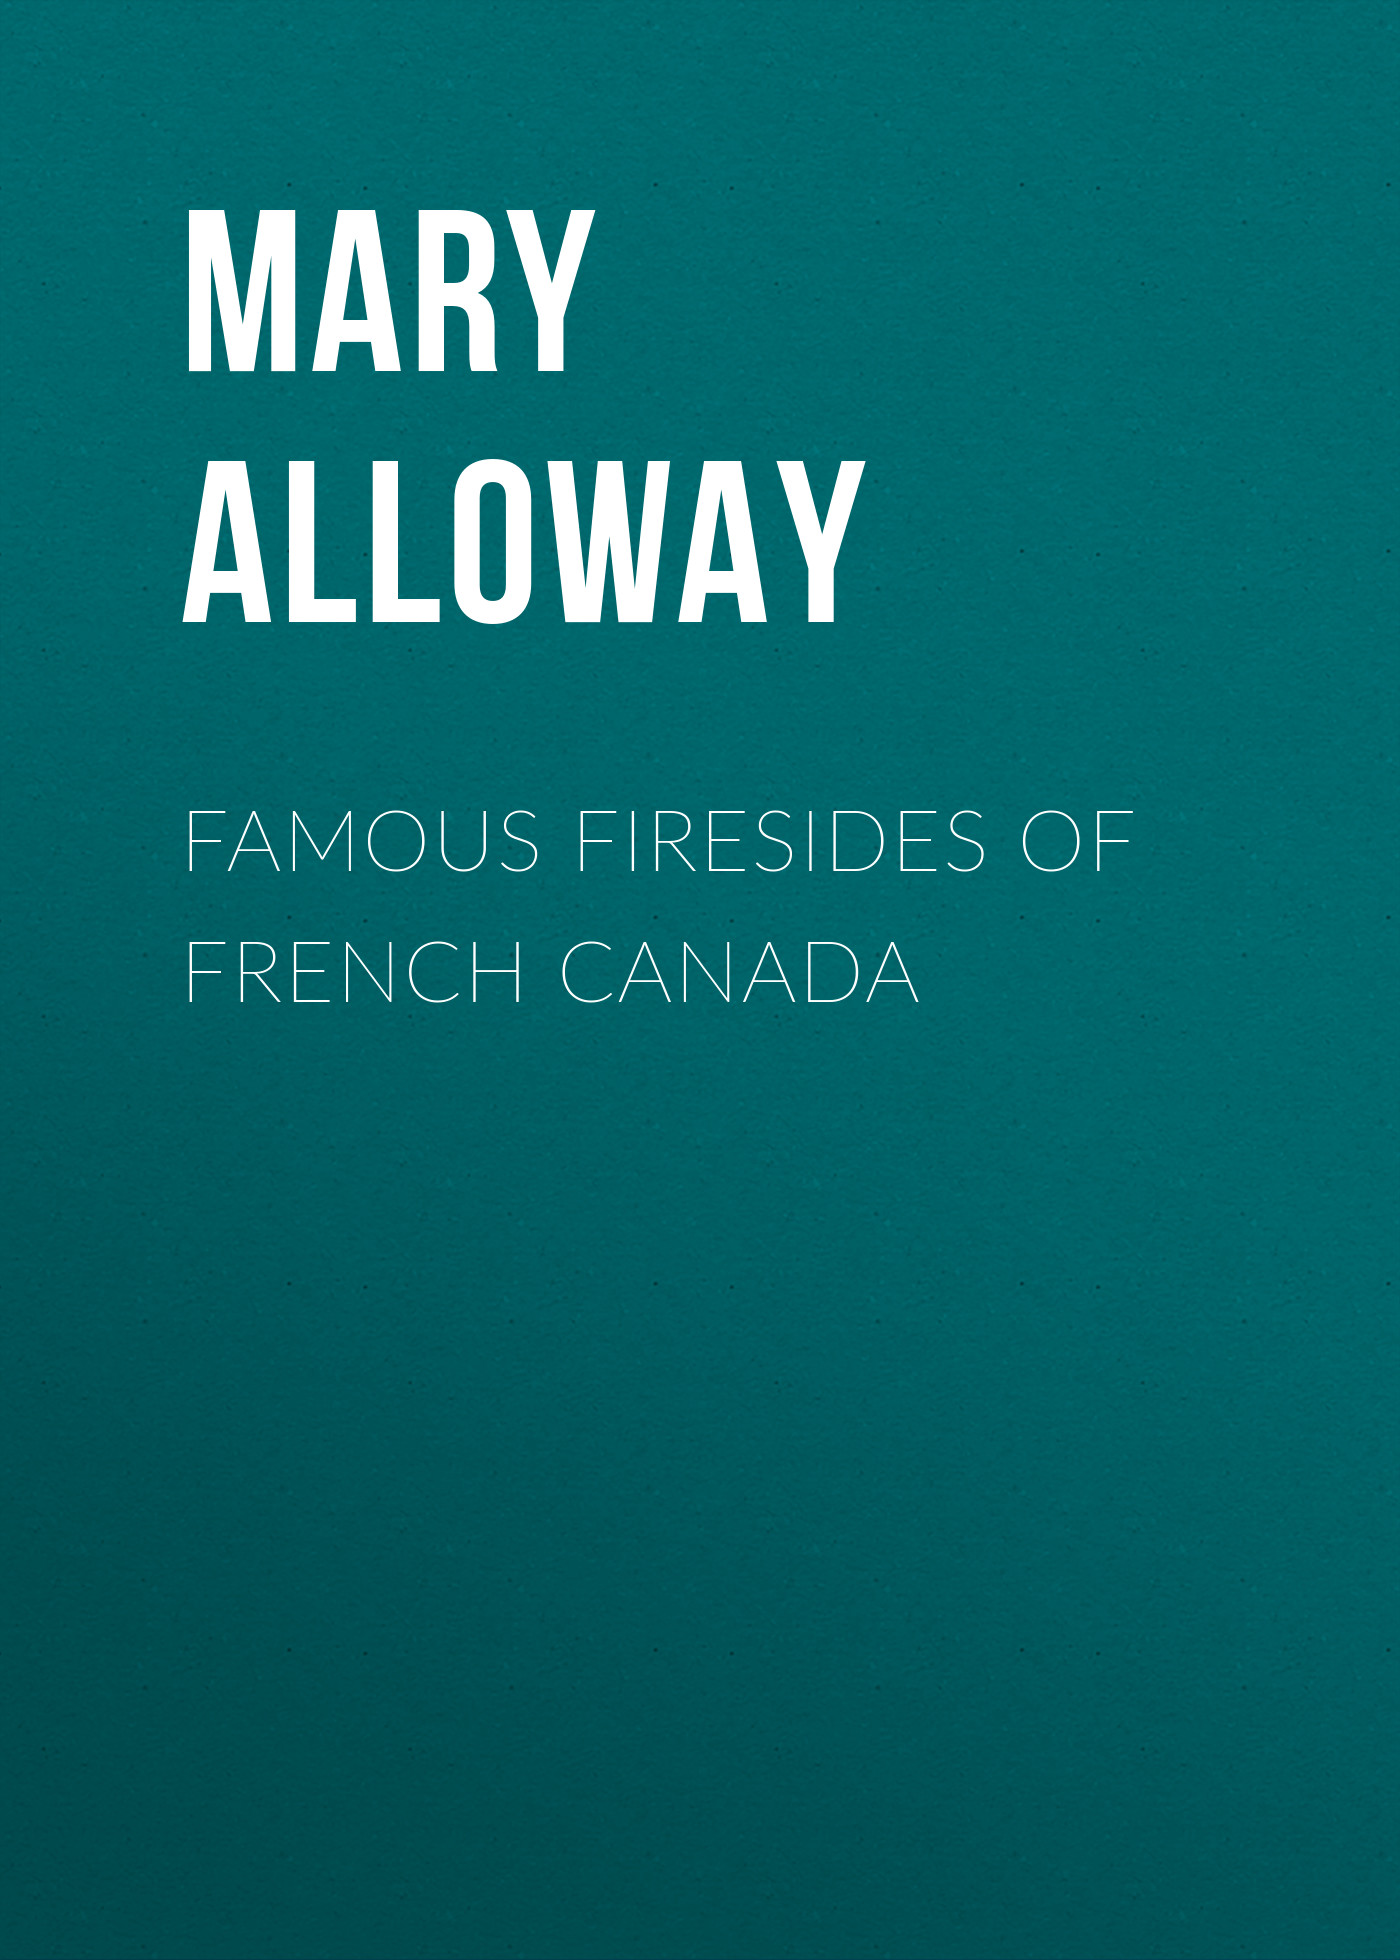 Alloway Mary Wilson Famous Firesides of French Canada